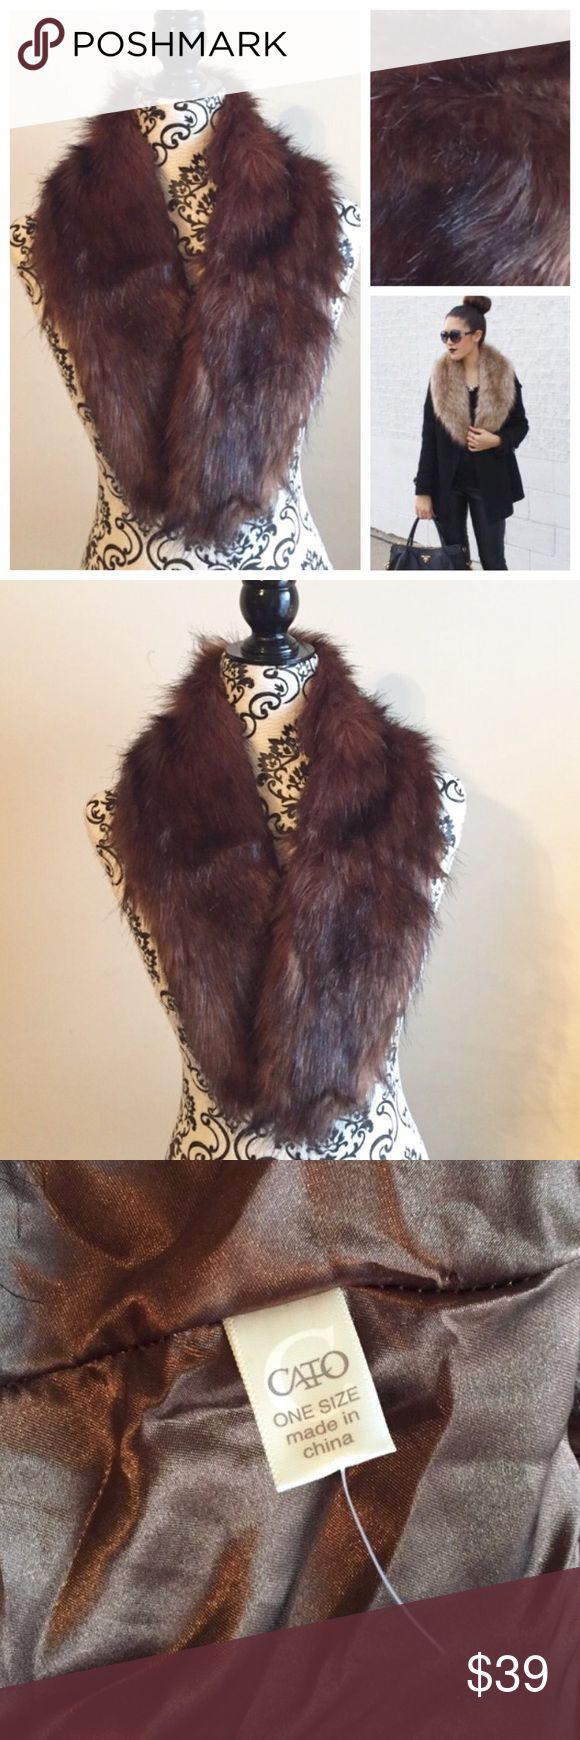 NWOT faux fur stole in gorgeous browns and reds NWOT faux fur stole in gorgeous natural looking shades of browns and reds. Approximately 4 feet long. Faux fur: 79% acrylic, 21% modacrylic and the backing is 100% polyester. Incredibly soft and easy to wear and care for - machine washable. One large hook and eye closure. This stole is extremely versatile and can be worn as a collar for a coat, a scarf, or as an extra fun detail to an outfit! ❗️PRICE FIRM UNLESS BUNDLED❗️ Accessories Scarves…